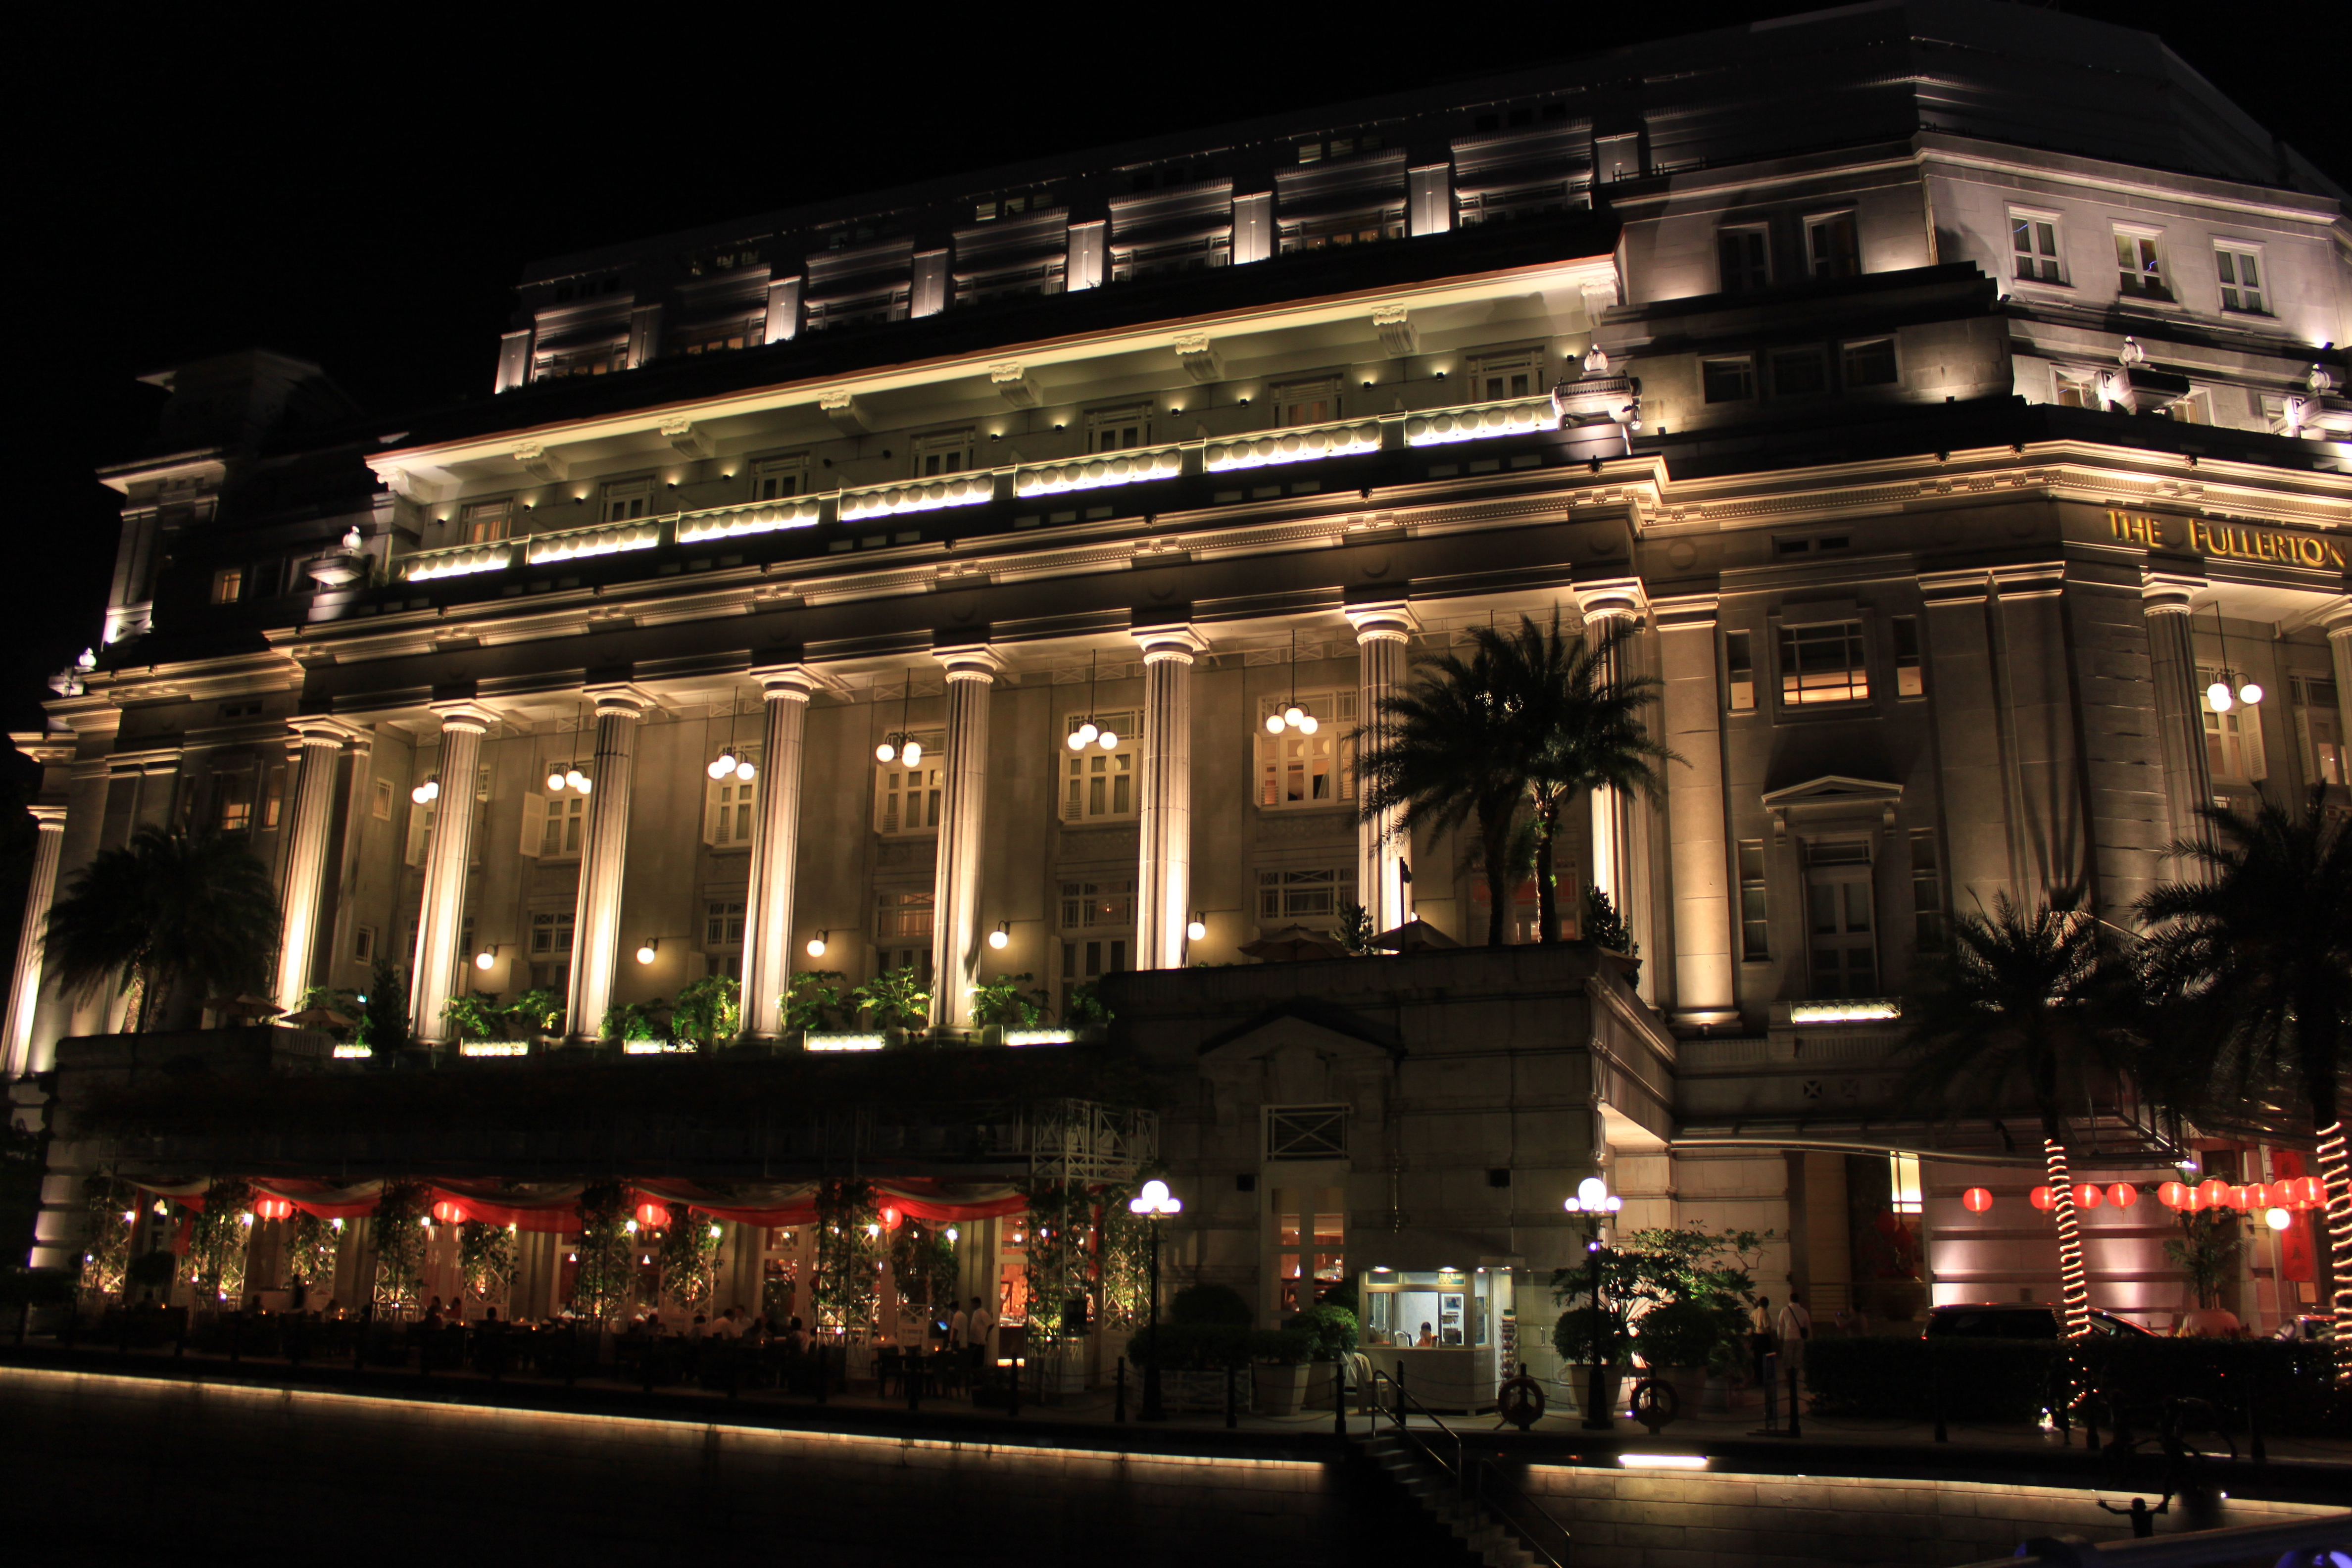 The Fullerton Bay Hotel - Hotel In Singapore